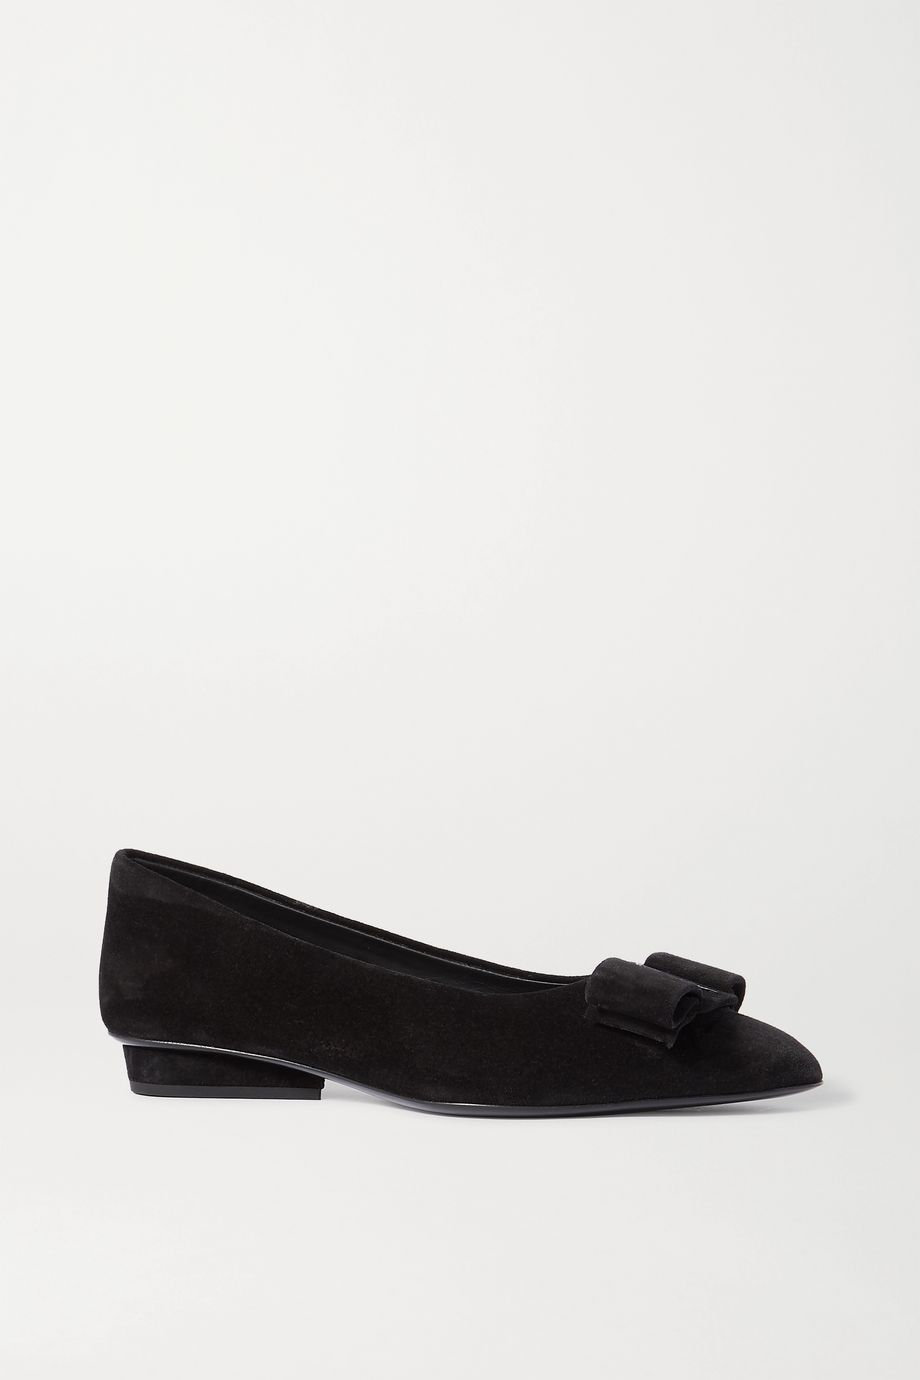 Salvatore Ferragamo Viva bow-embellished suede point-toe flats